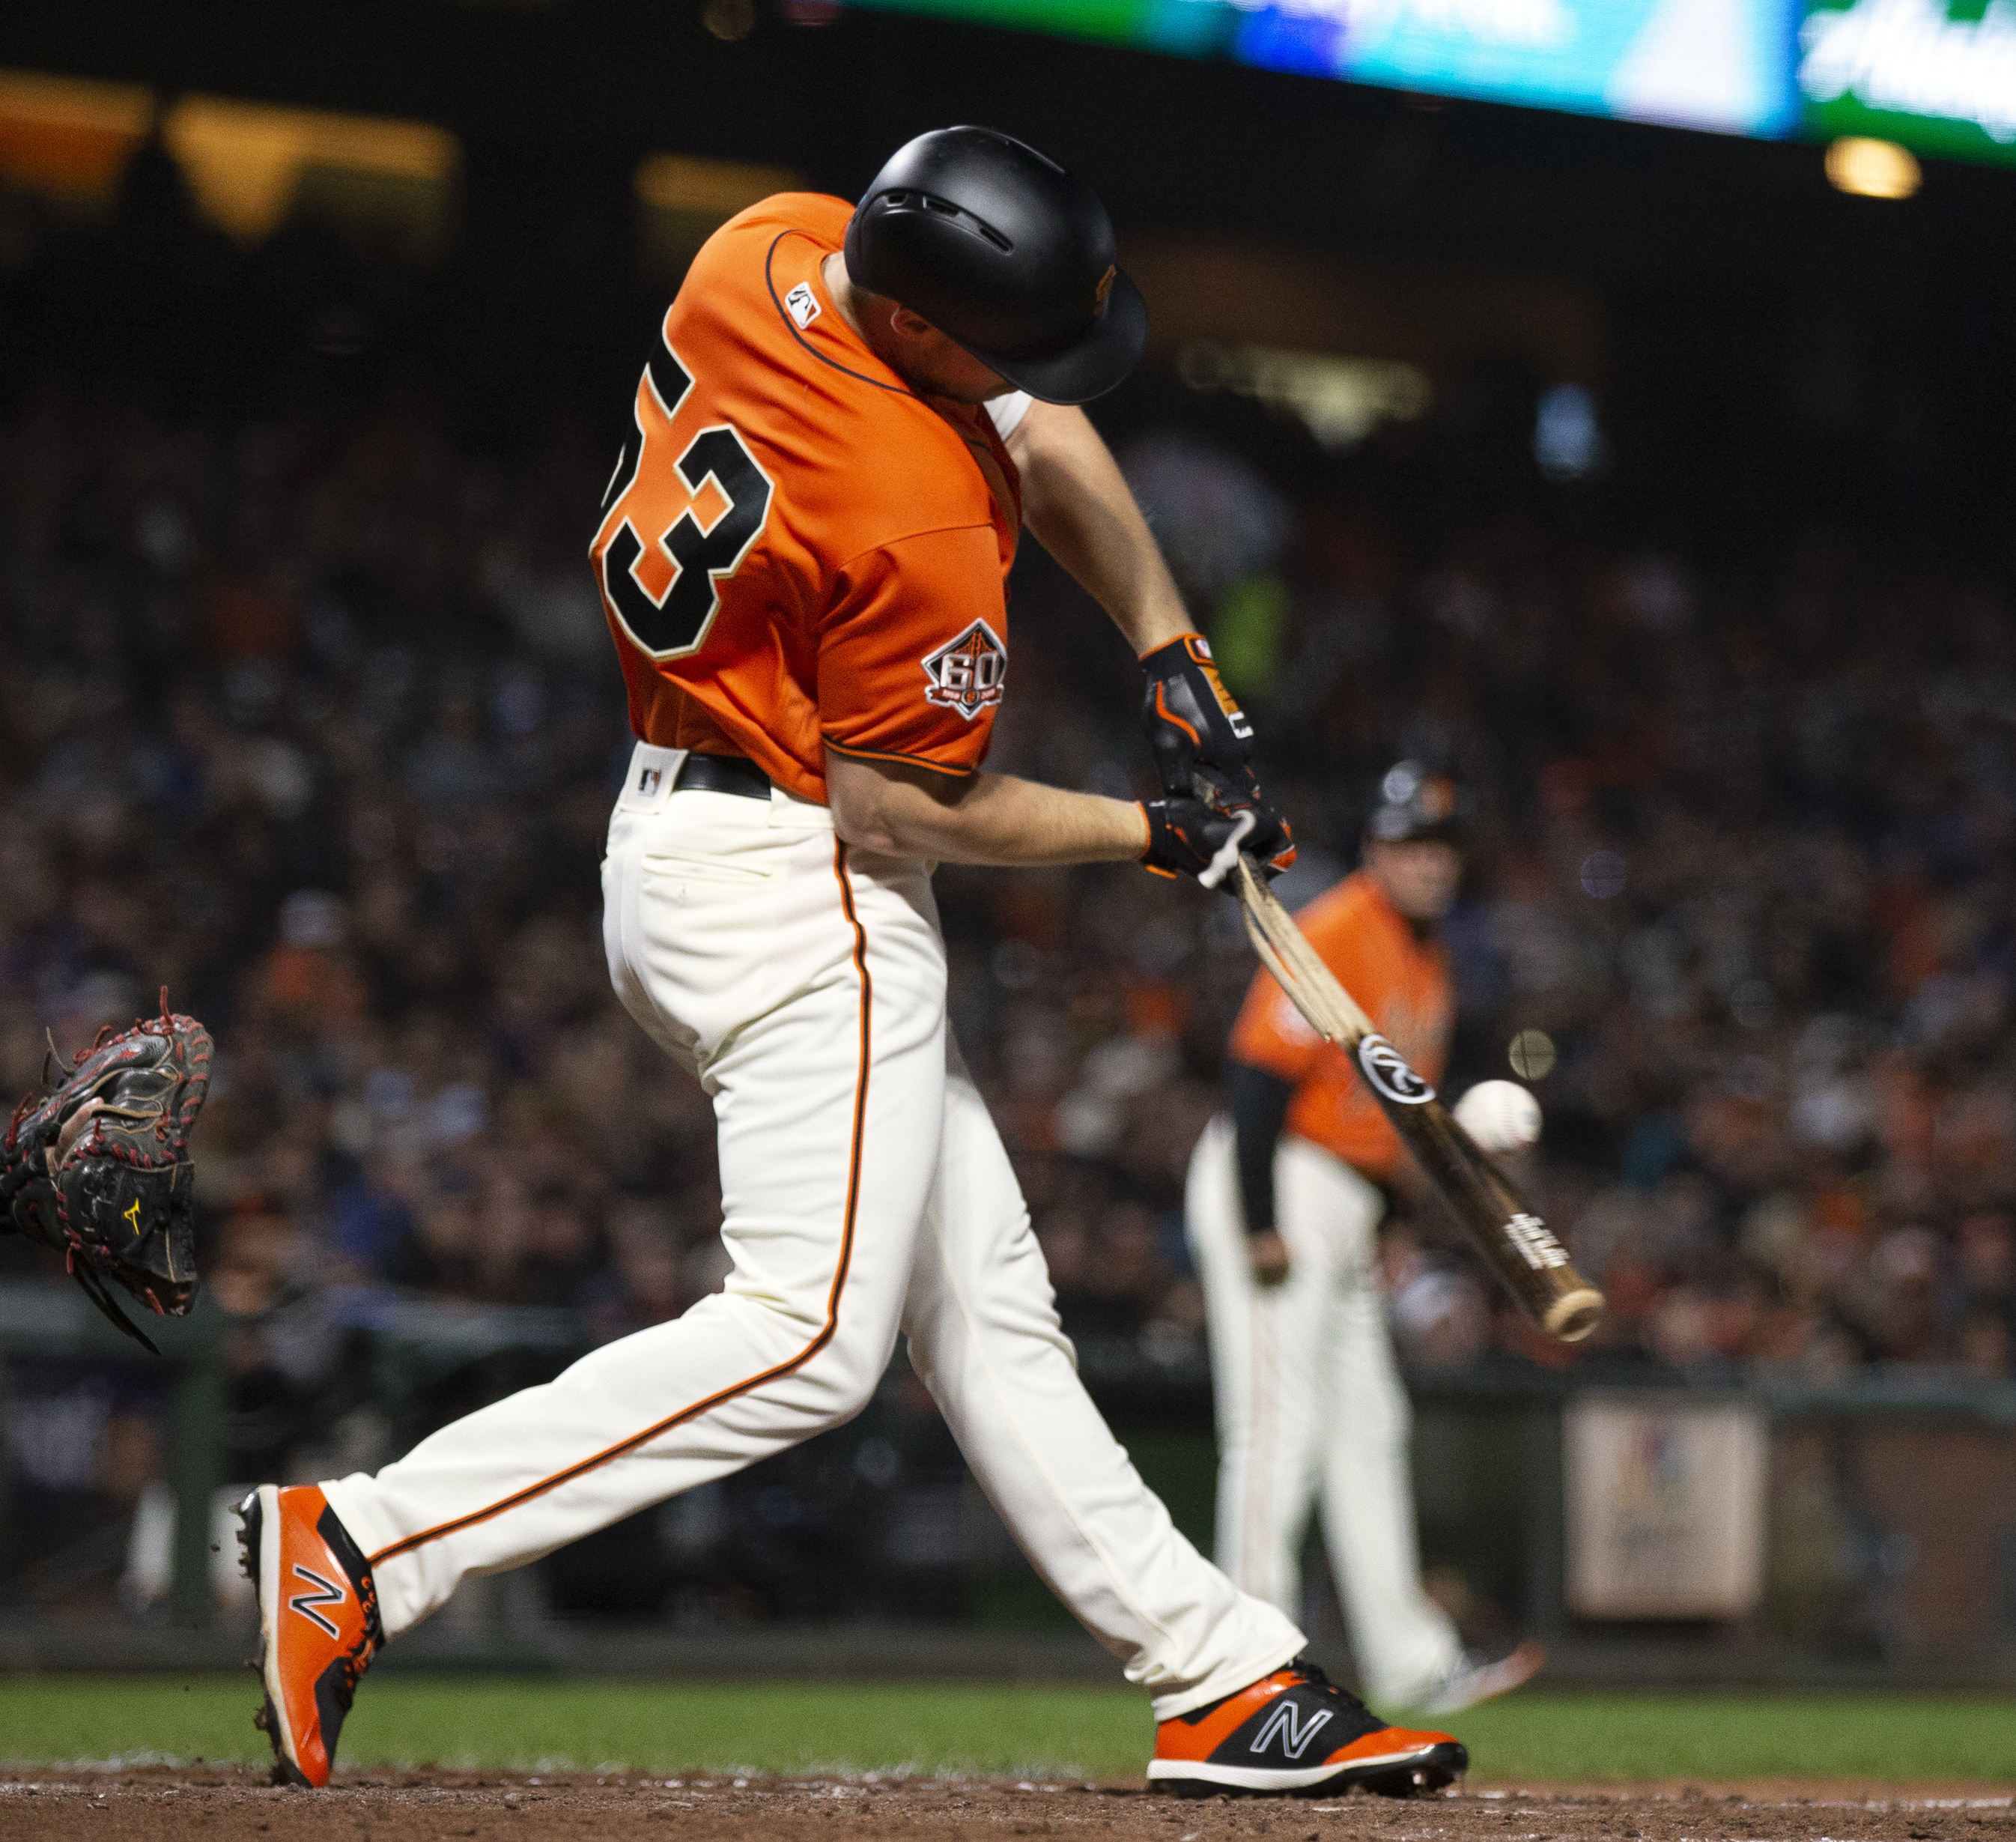 Suarez outduels Wheeler as Giants defeat punchless Mets 7-0